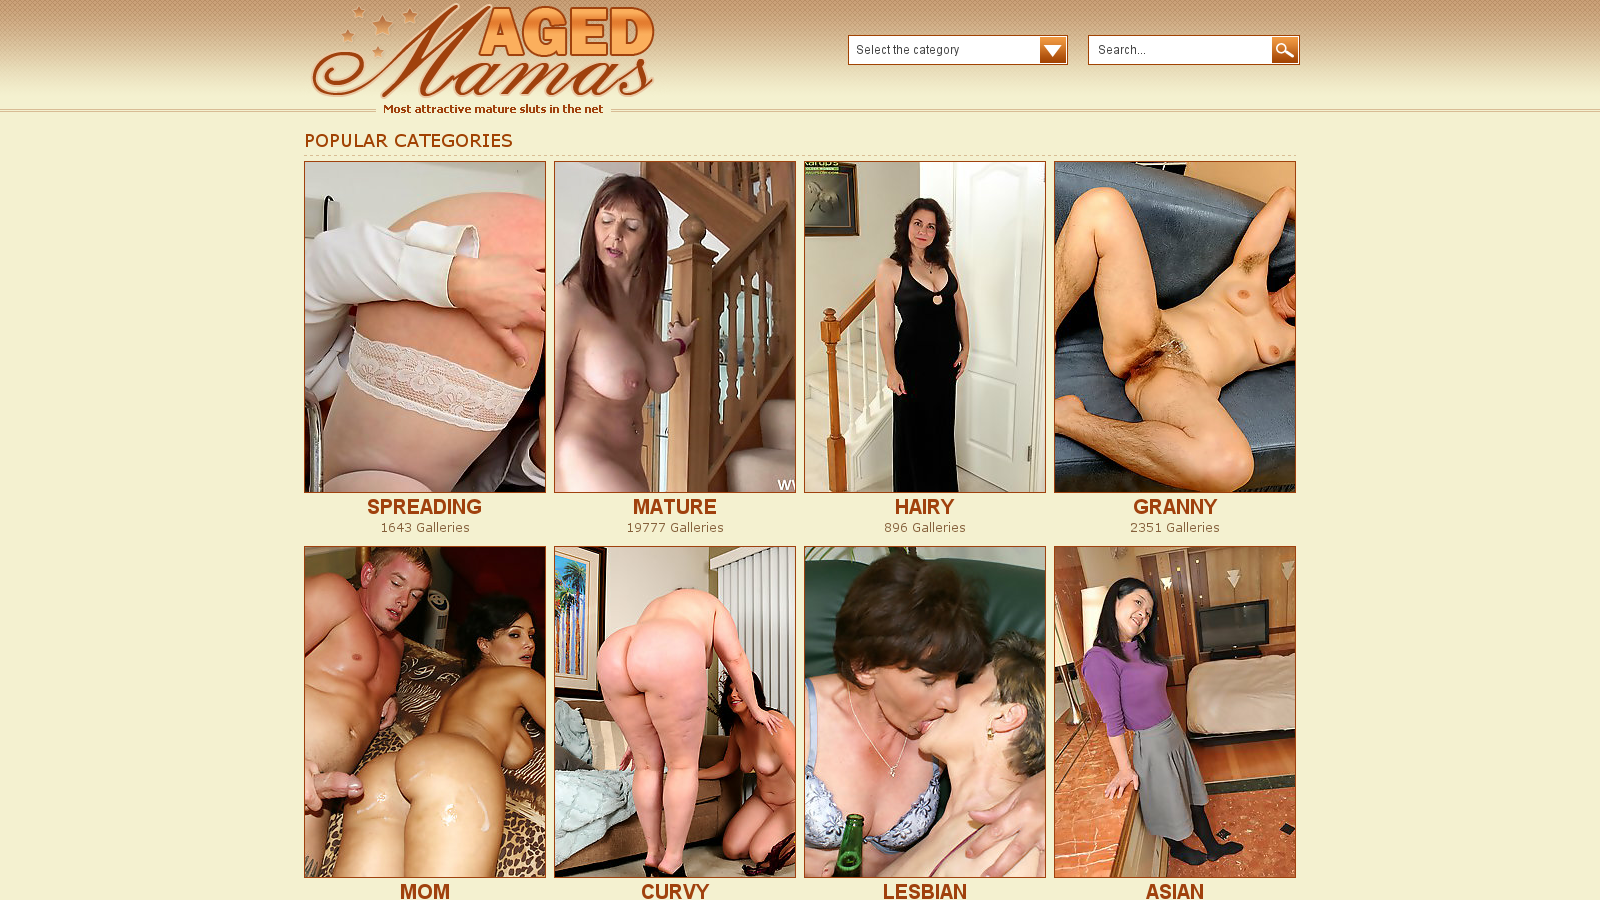 agedmamas (agedmamas) compare related porn sites